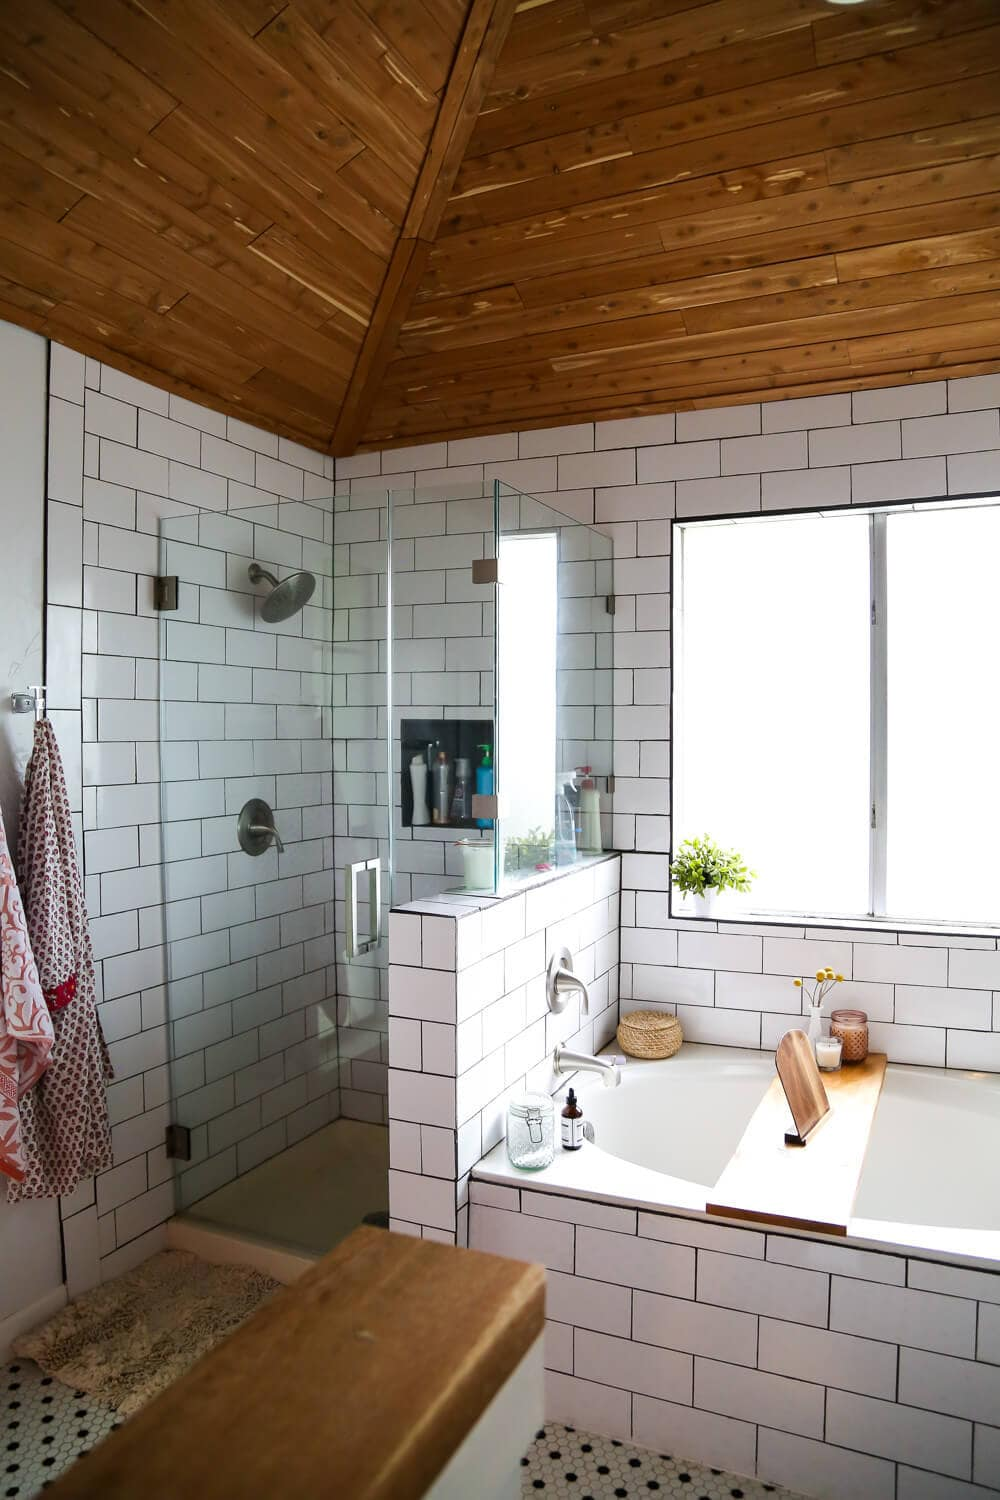 diy-budget-bathroom-renovation-6-of-18-1